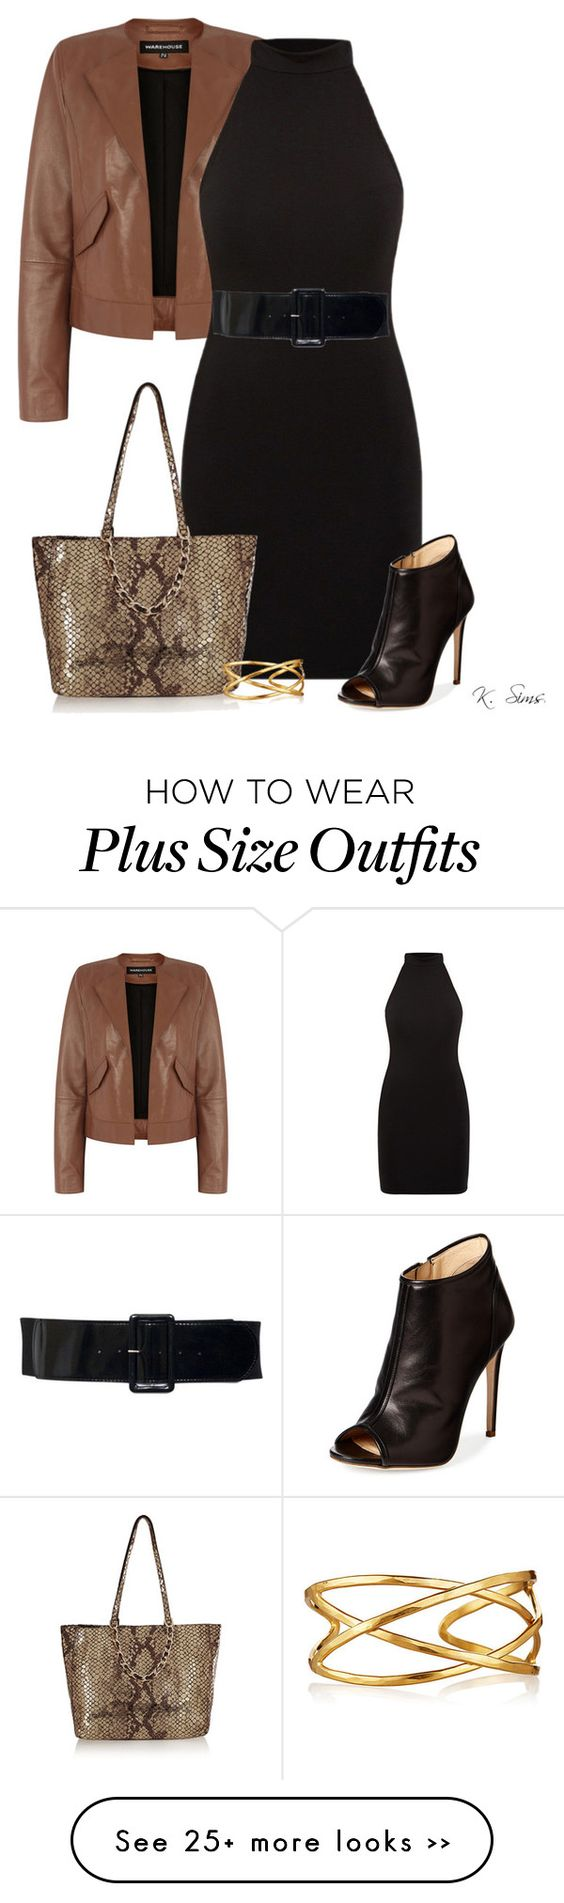 """Untitled #6138"" by ksims-1 on Polyvore:"